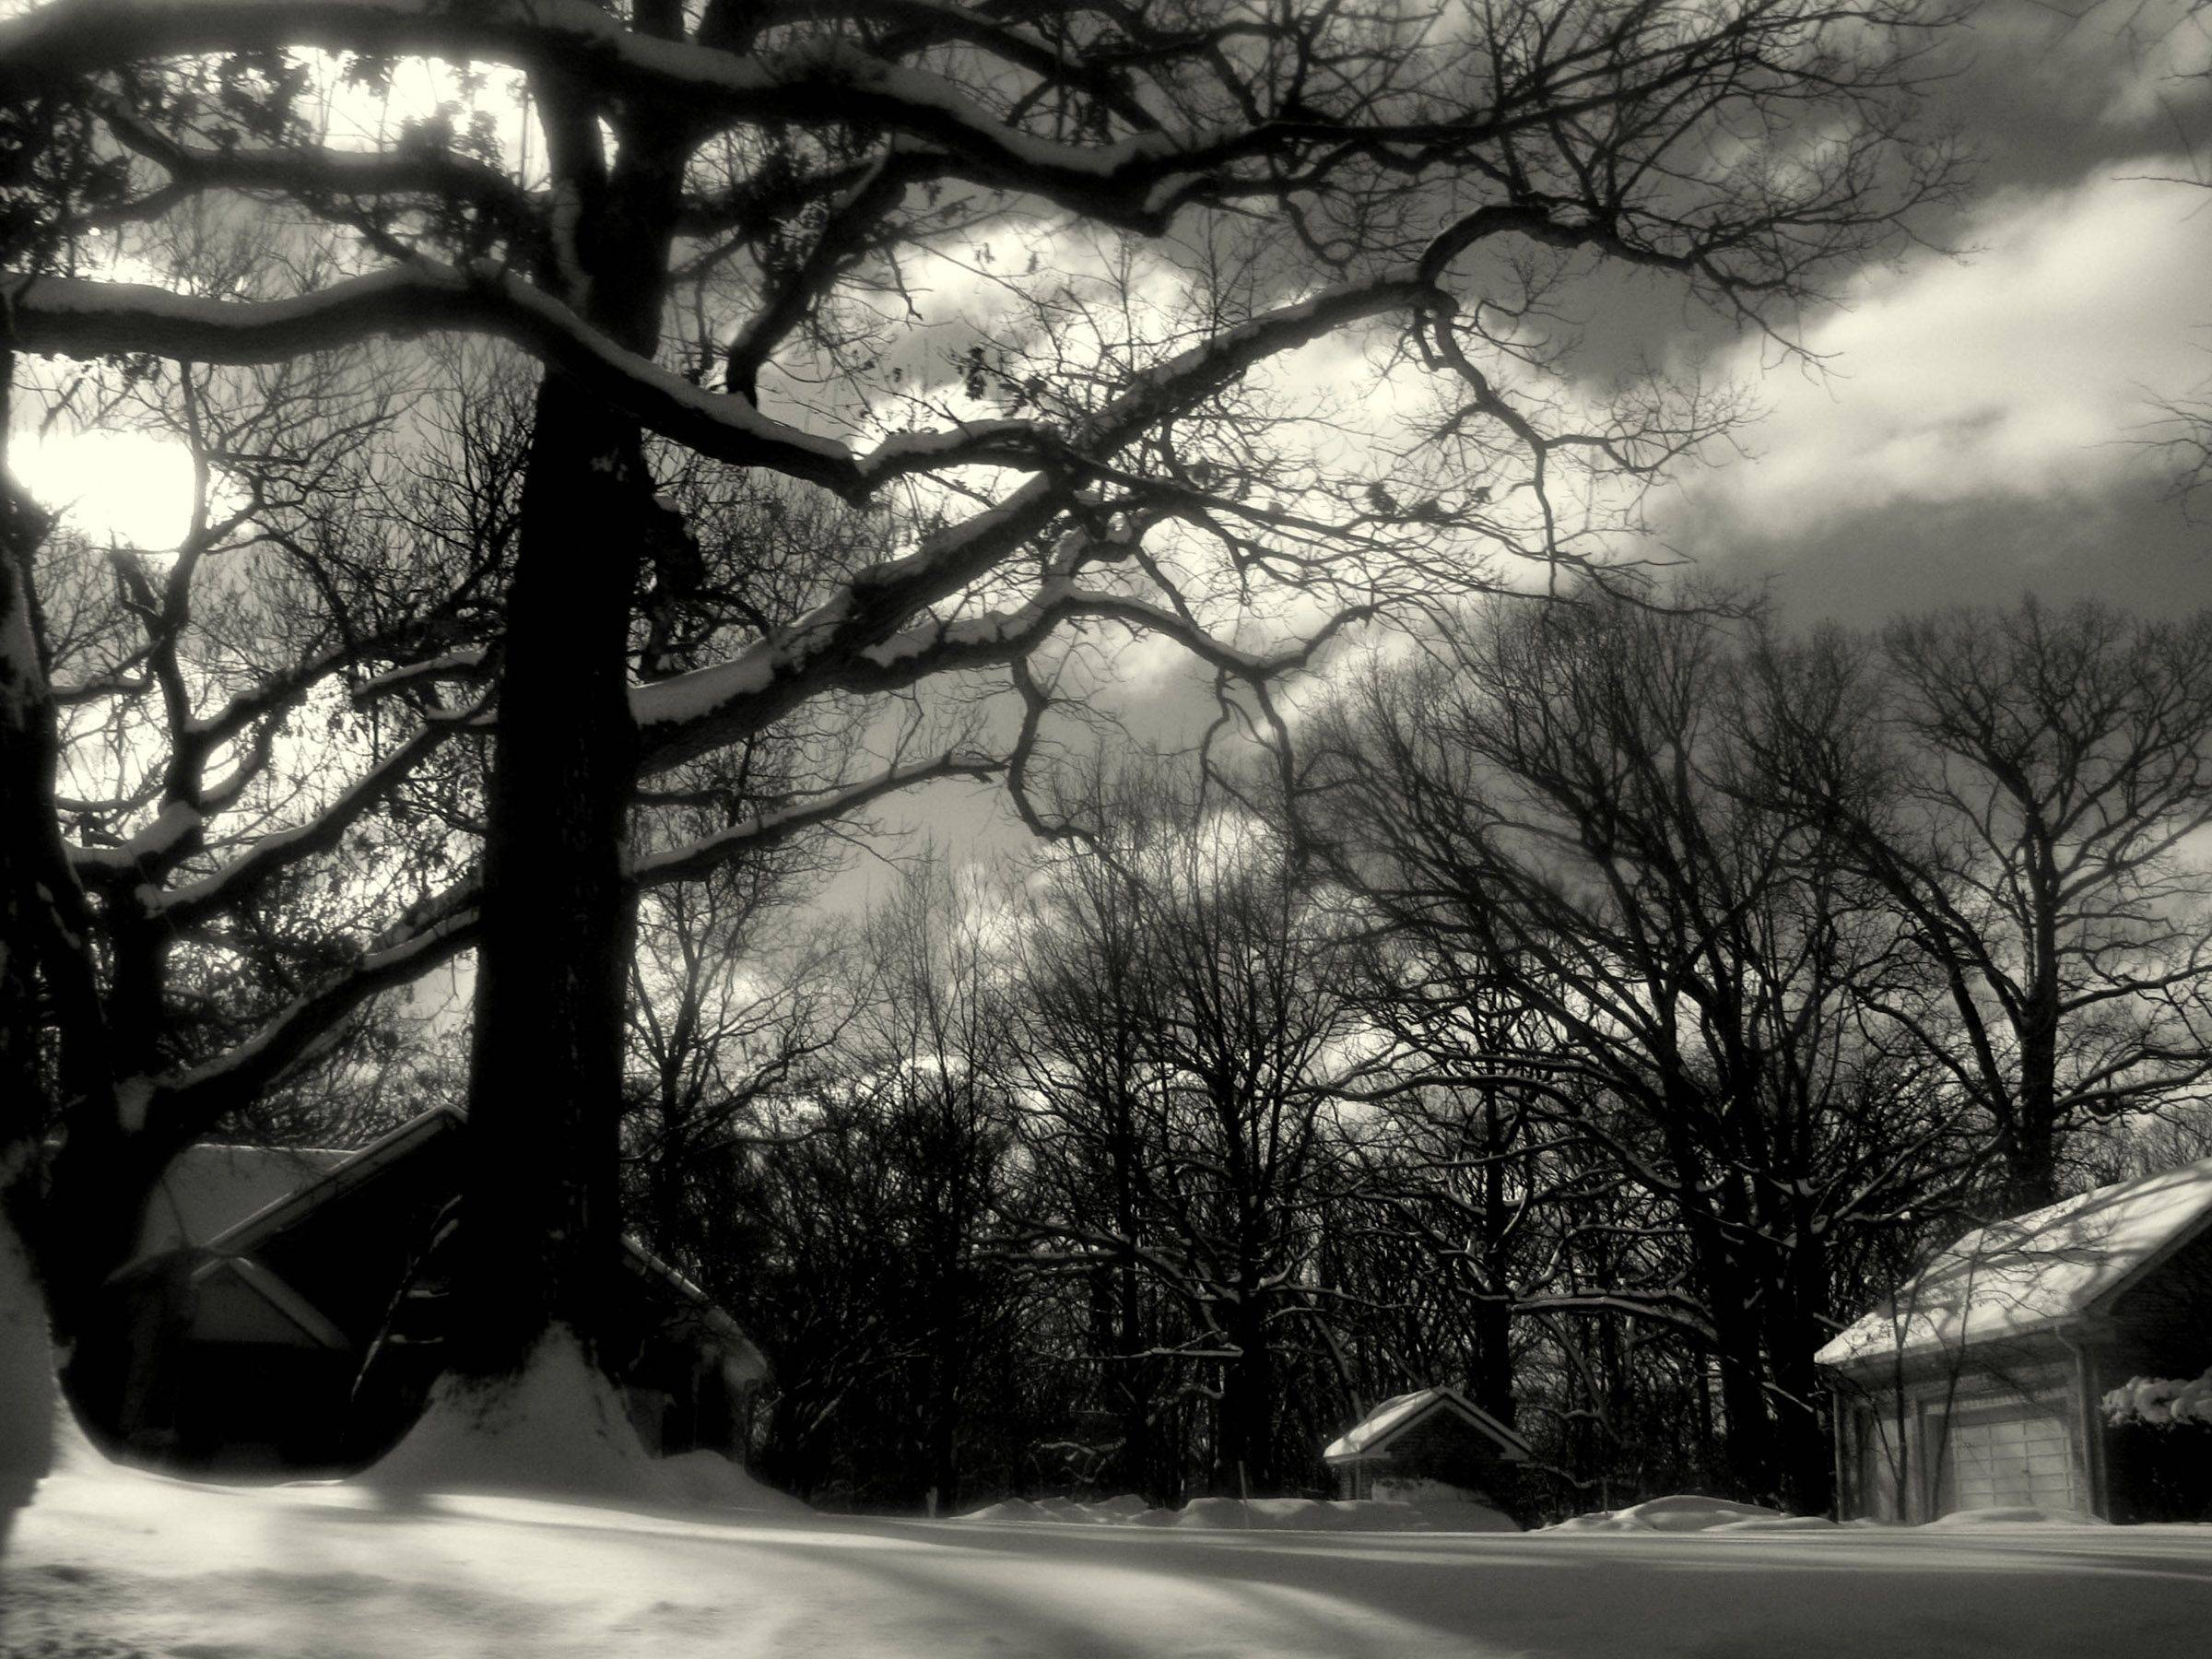 This is a winter scene I took from my commute last winter on St. Charles Road to Elmhurst College. I used software to convert the photo to black and white and add the soft focus to give it a surreal quality. I liked the snow-covered branches on these trees and how the trees towered over the tiny houses.